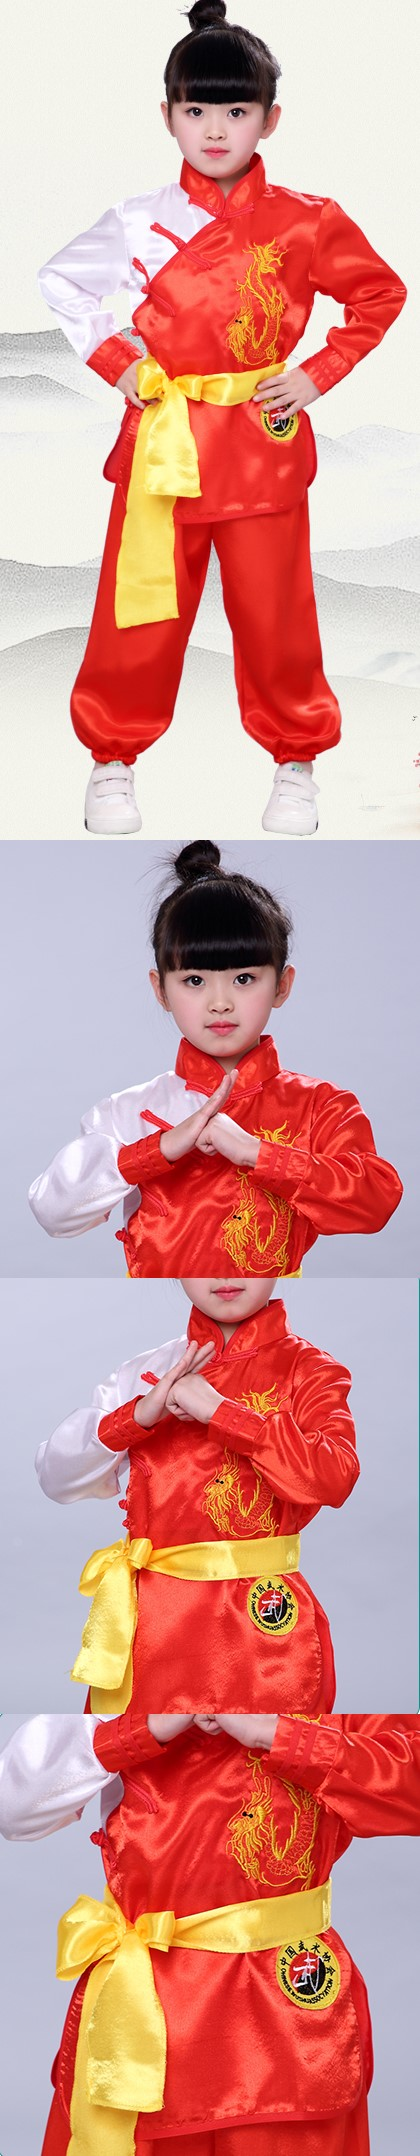 Kid's Dragon Embroidery Kung Fu Uniform with Sash (RM)